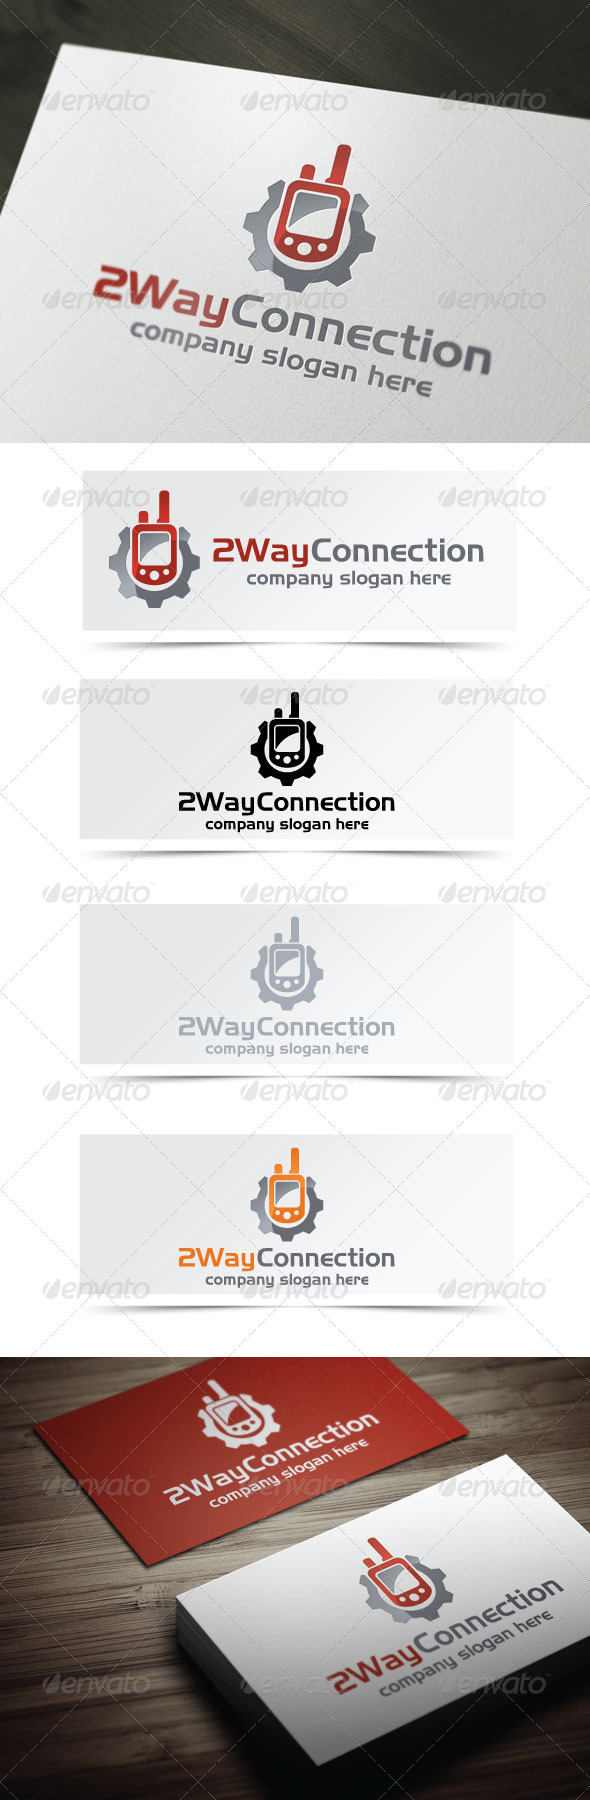 GraphicRiver 2Way Connection 4411586